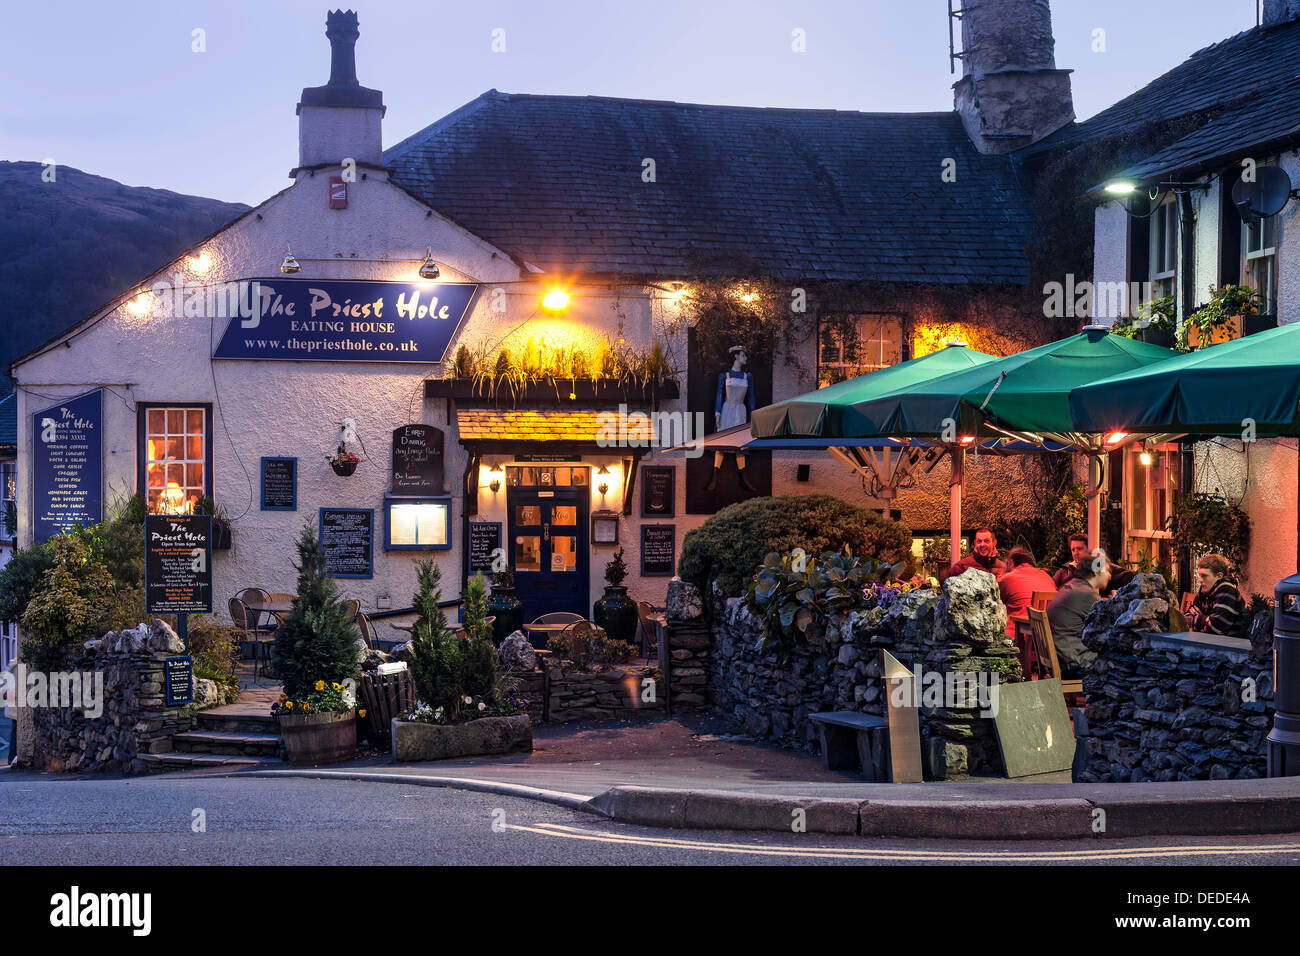 Ambleside pubs in early evening - Stock Image